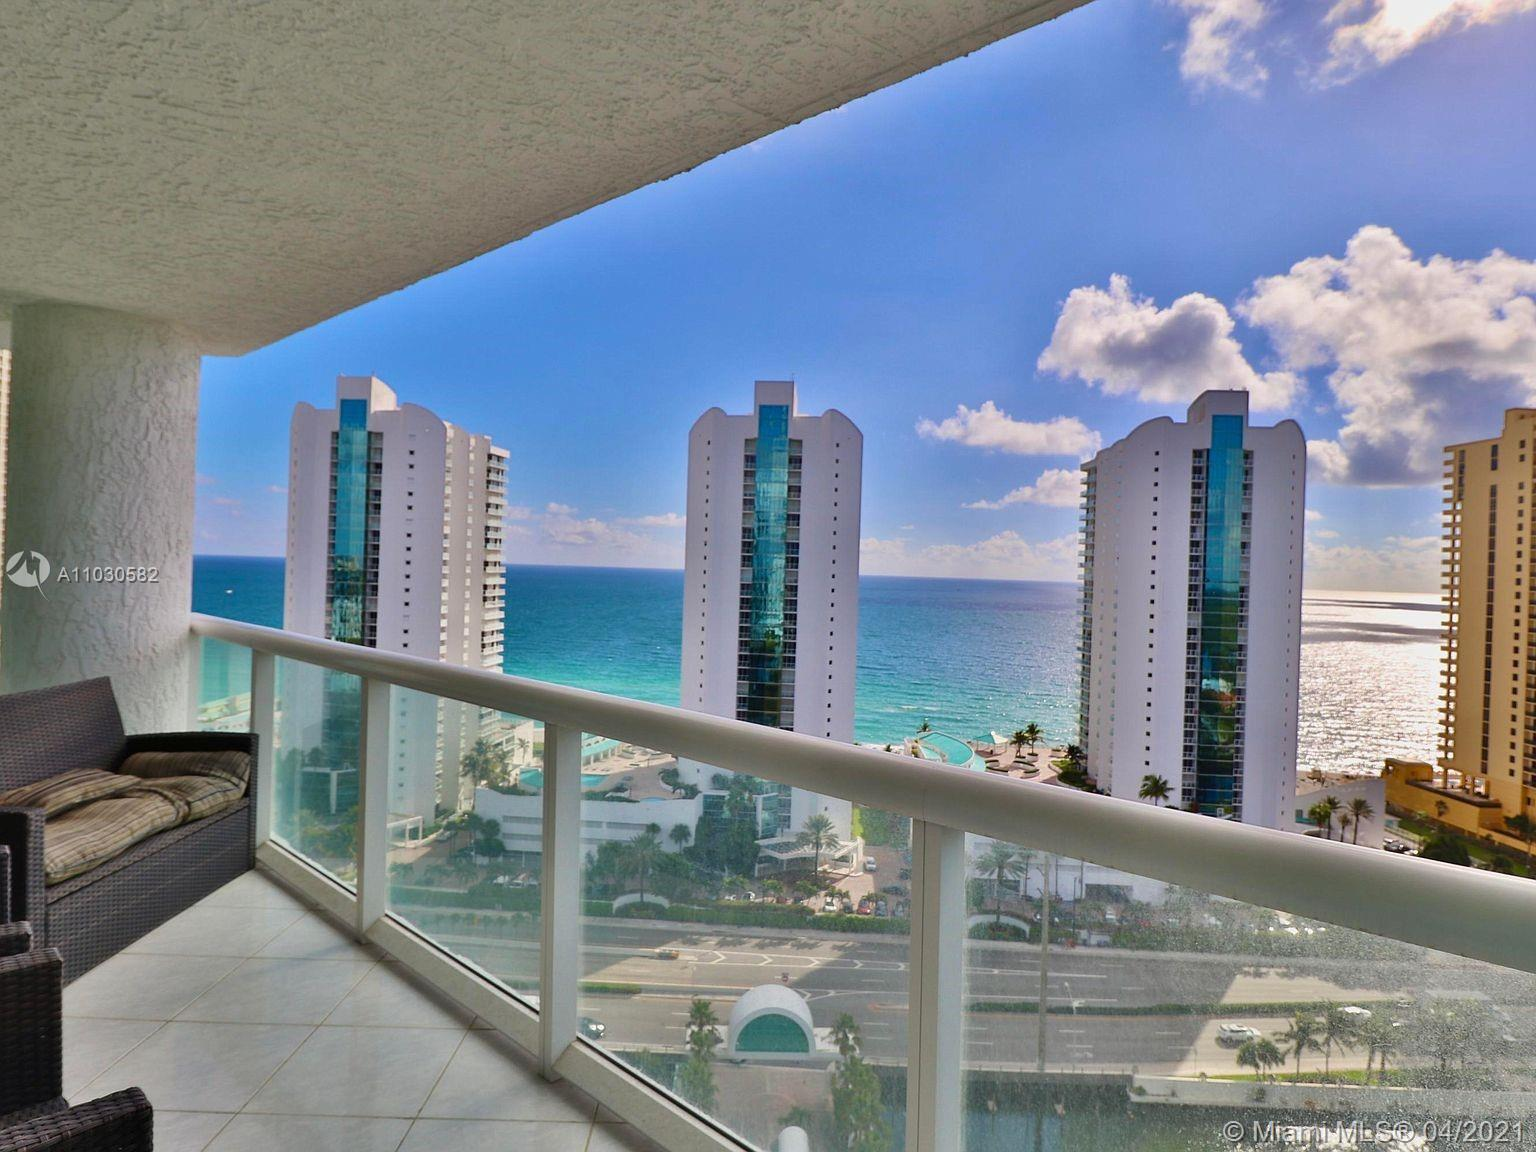 Beautiful 2 bedroom condo with a large den. This unit has spectacular views of the ocean from every